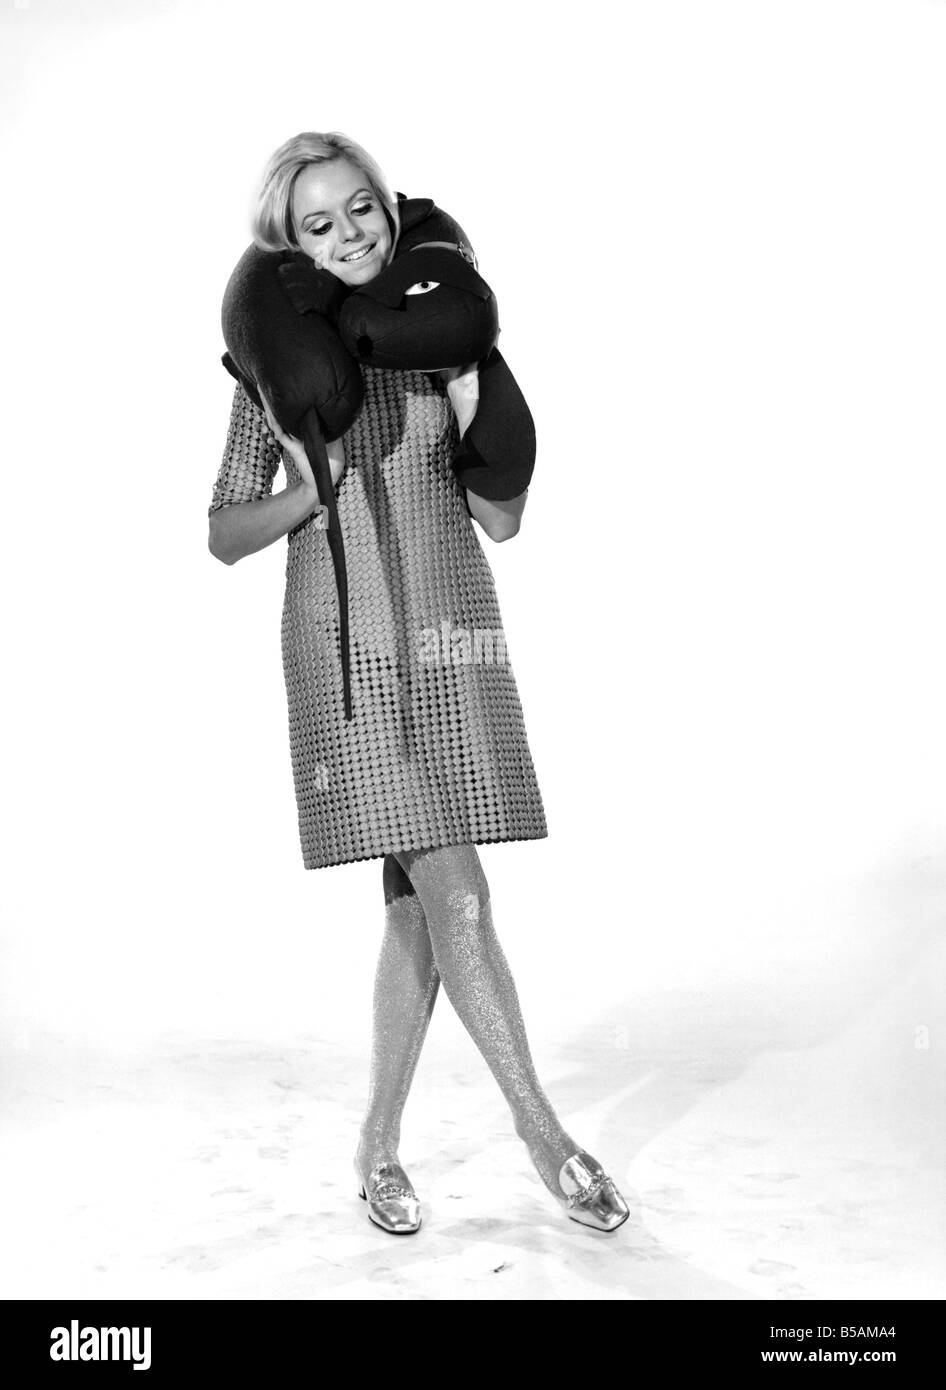 Model Anna Maria Greaves with Roly dog soft toy and draft excluder. 1959 D169-009 - Stock Image